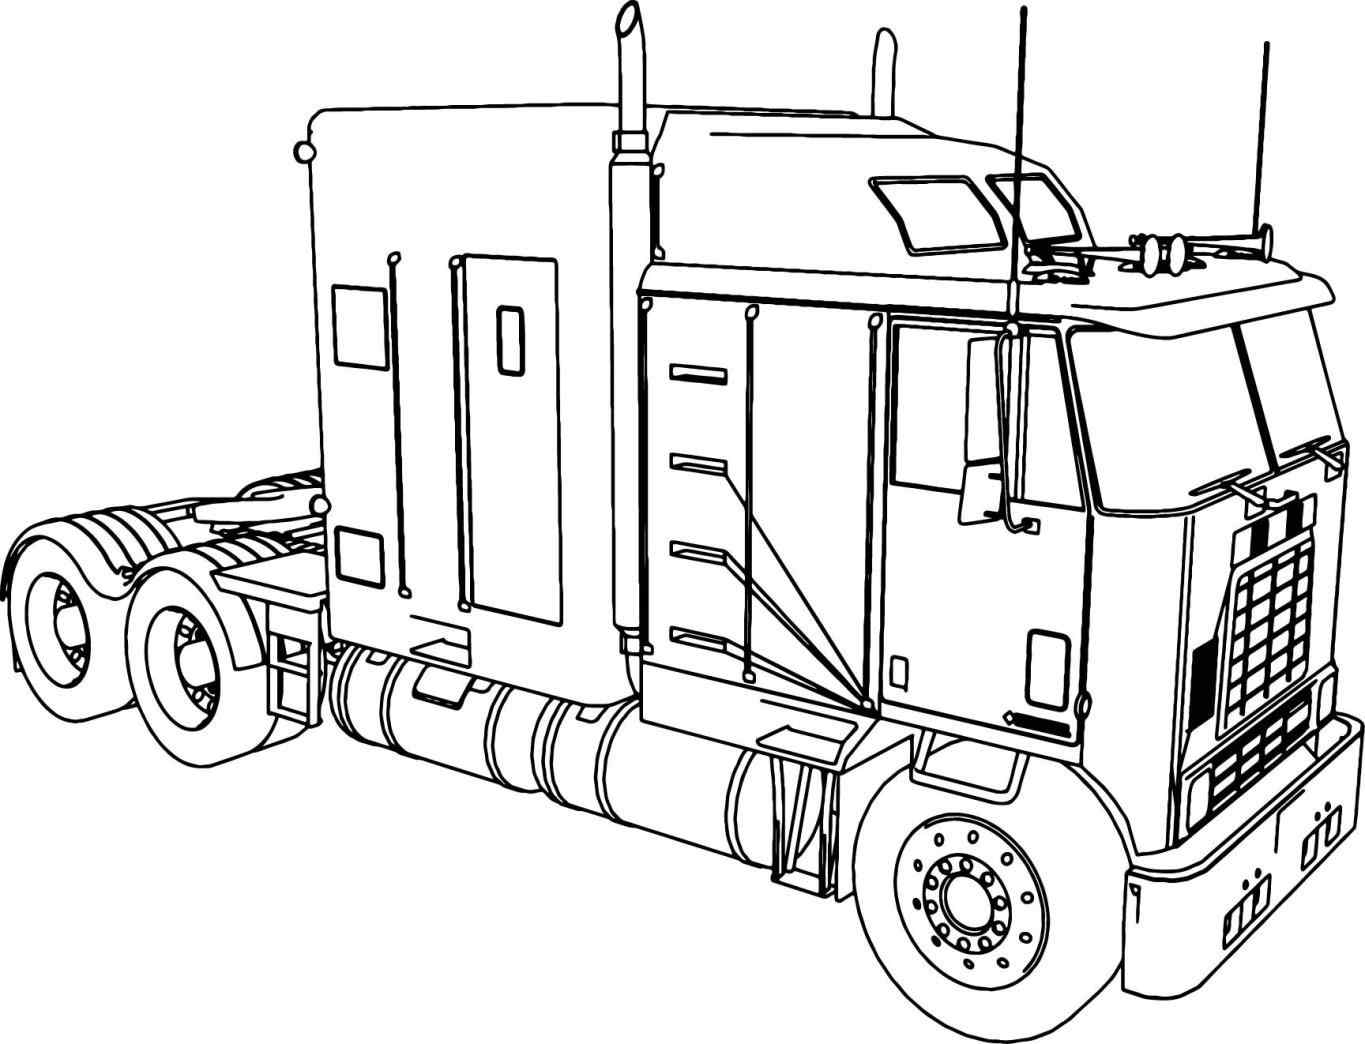 construction truck coloring pages dump truck coloring pages to download and print for free construction pages coloring truck